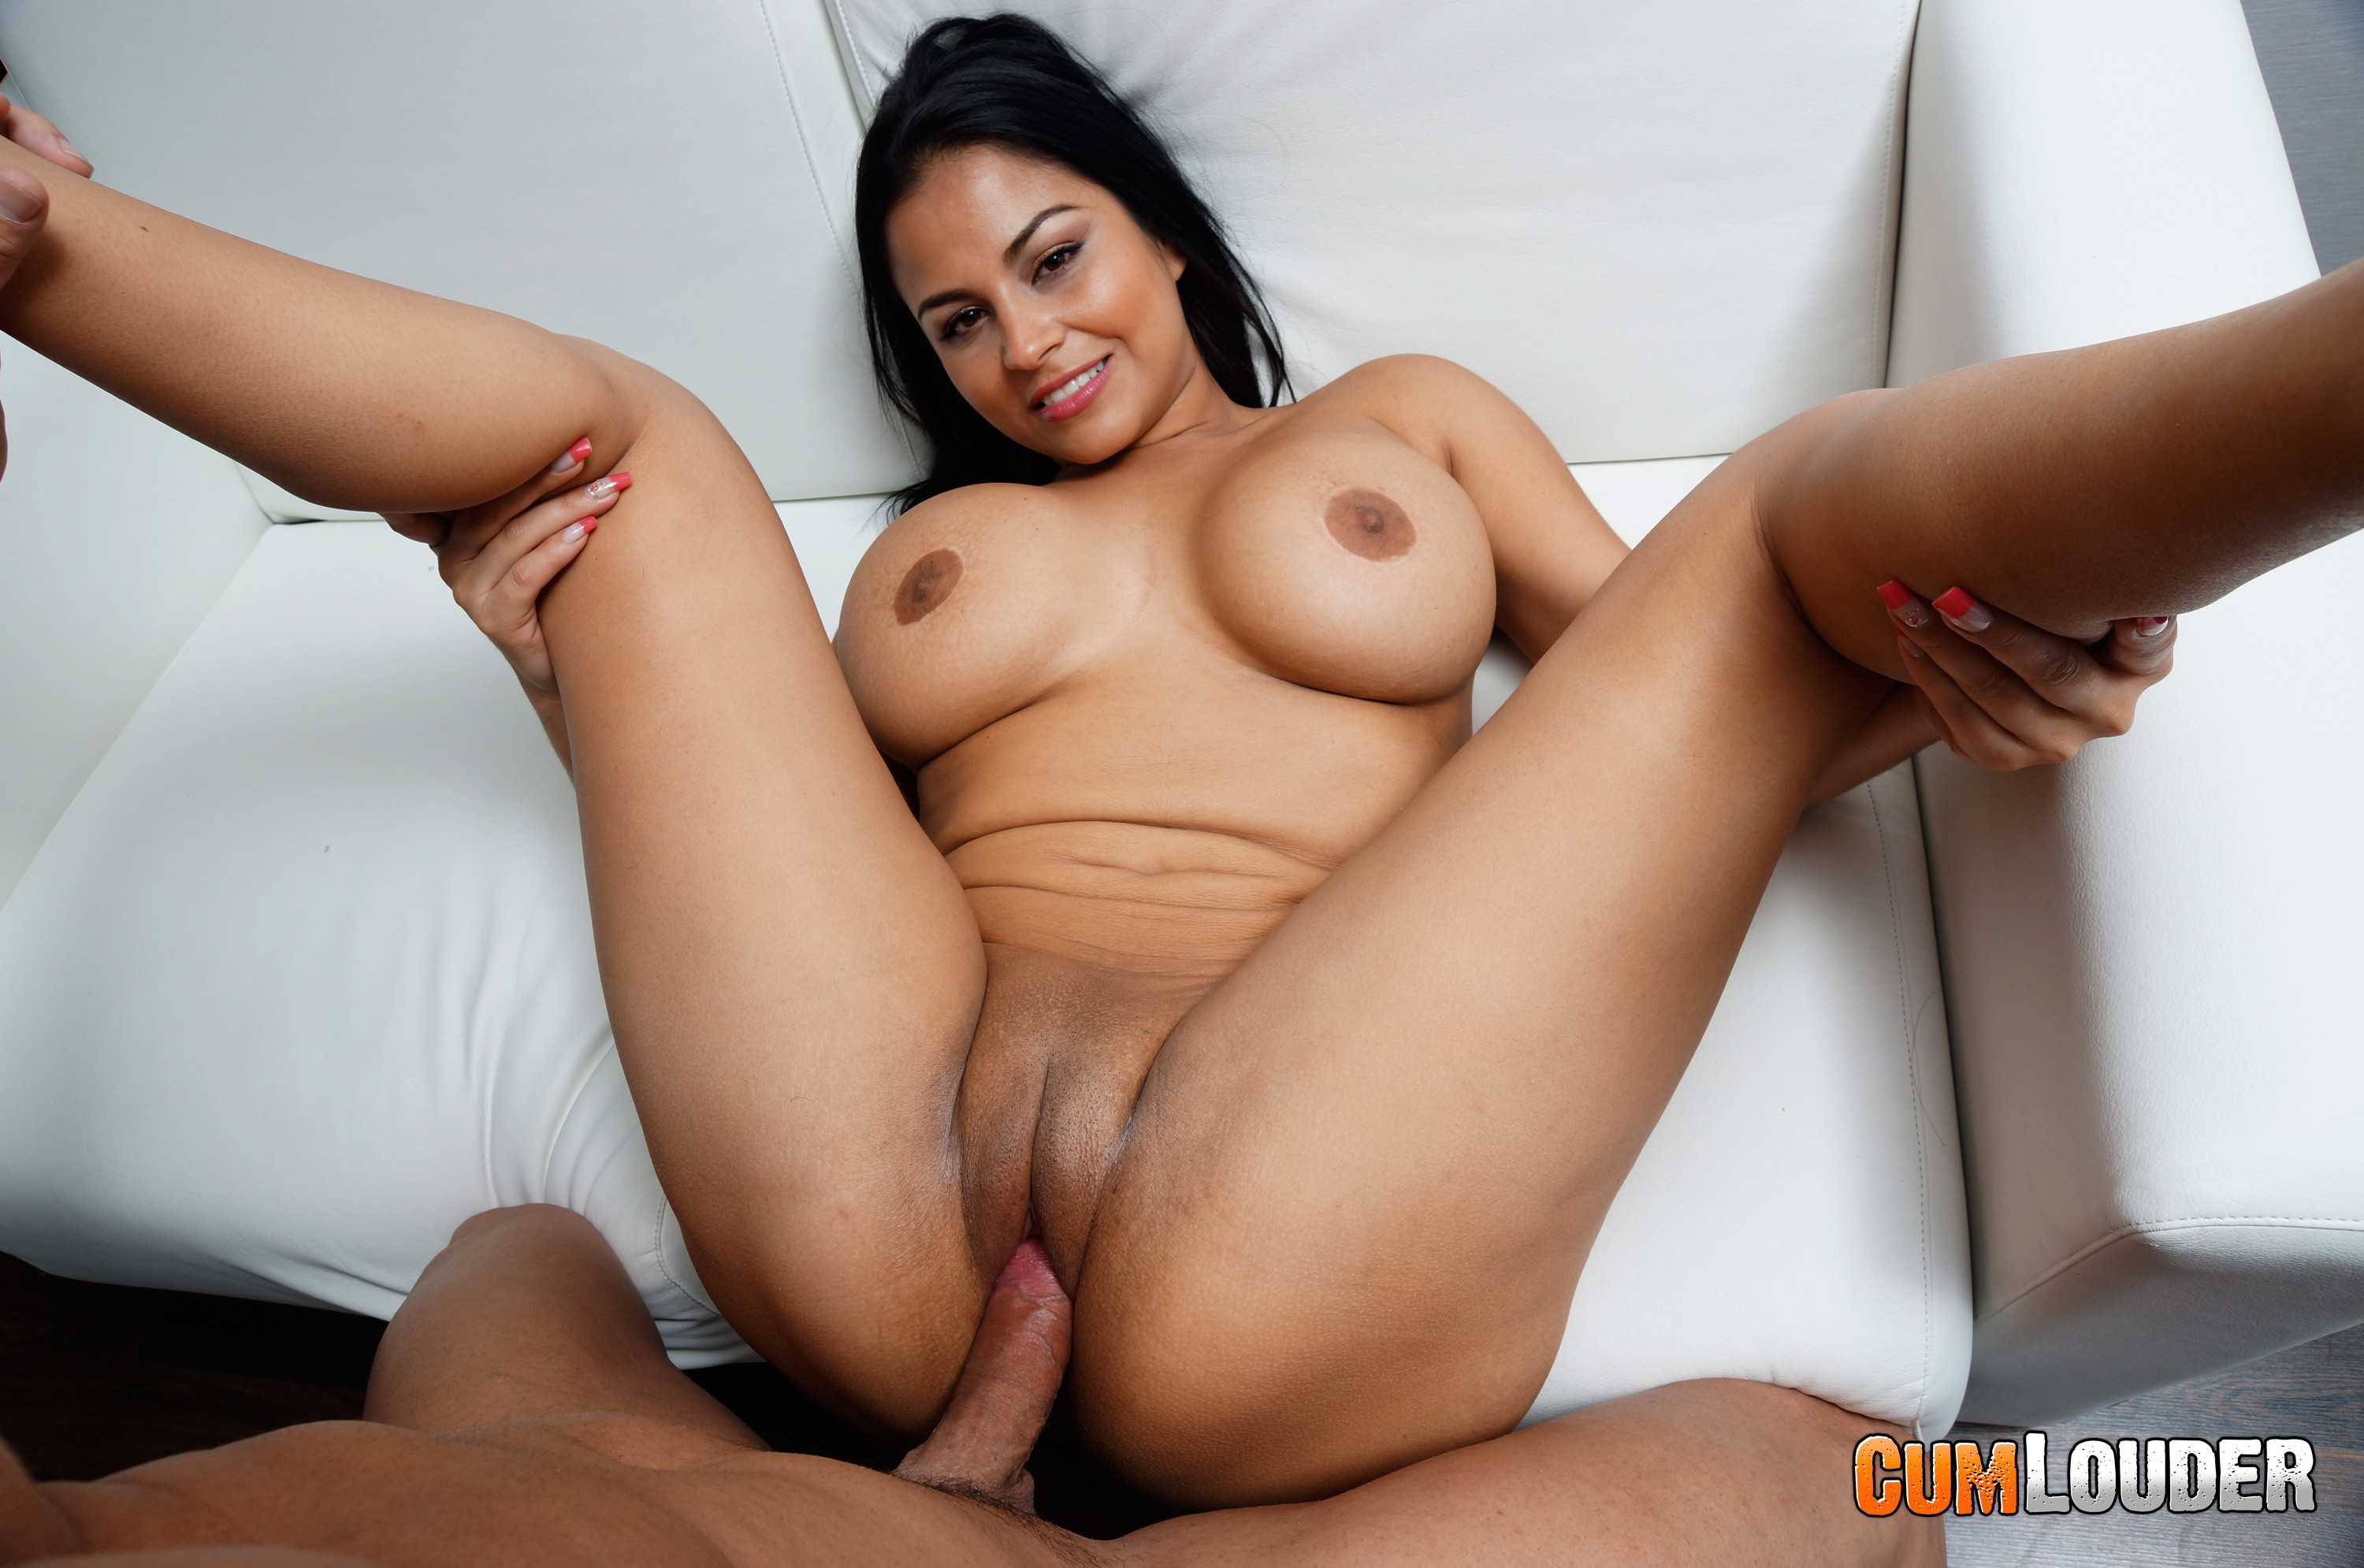 girl-fuck-gallery-latina-dick-shemales